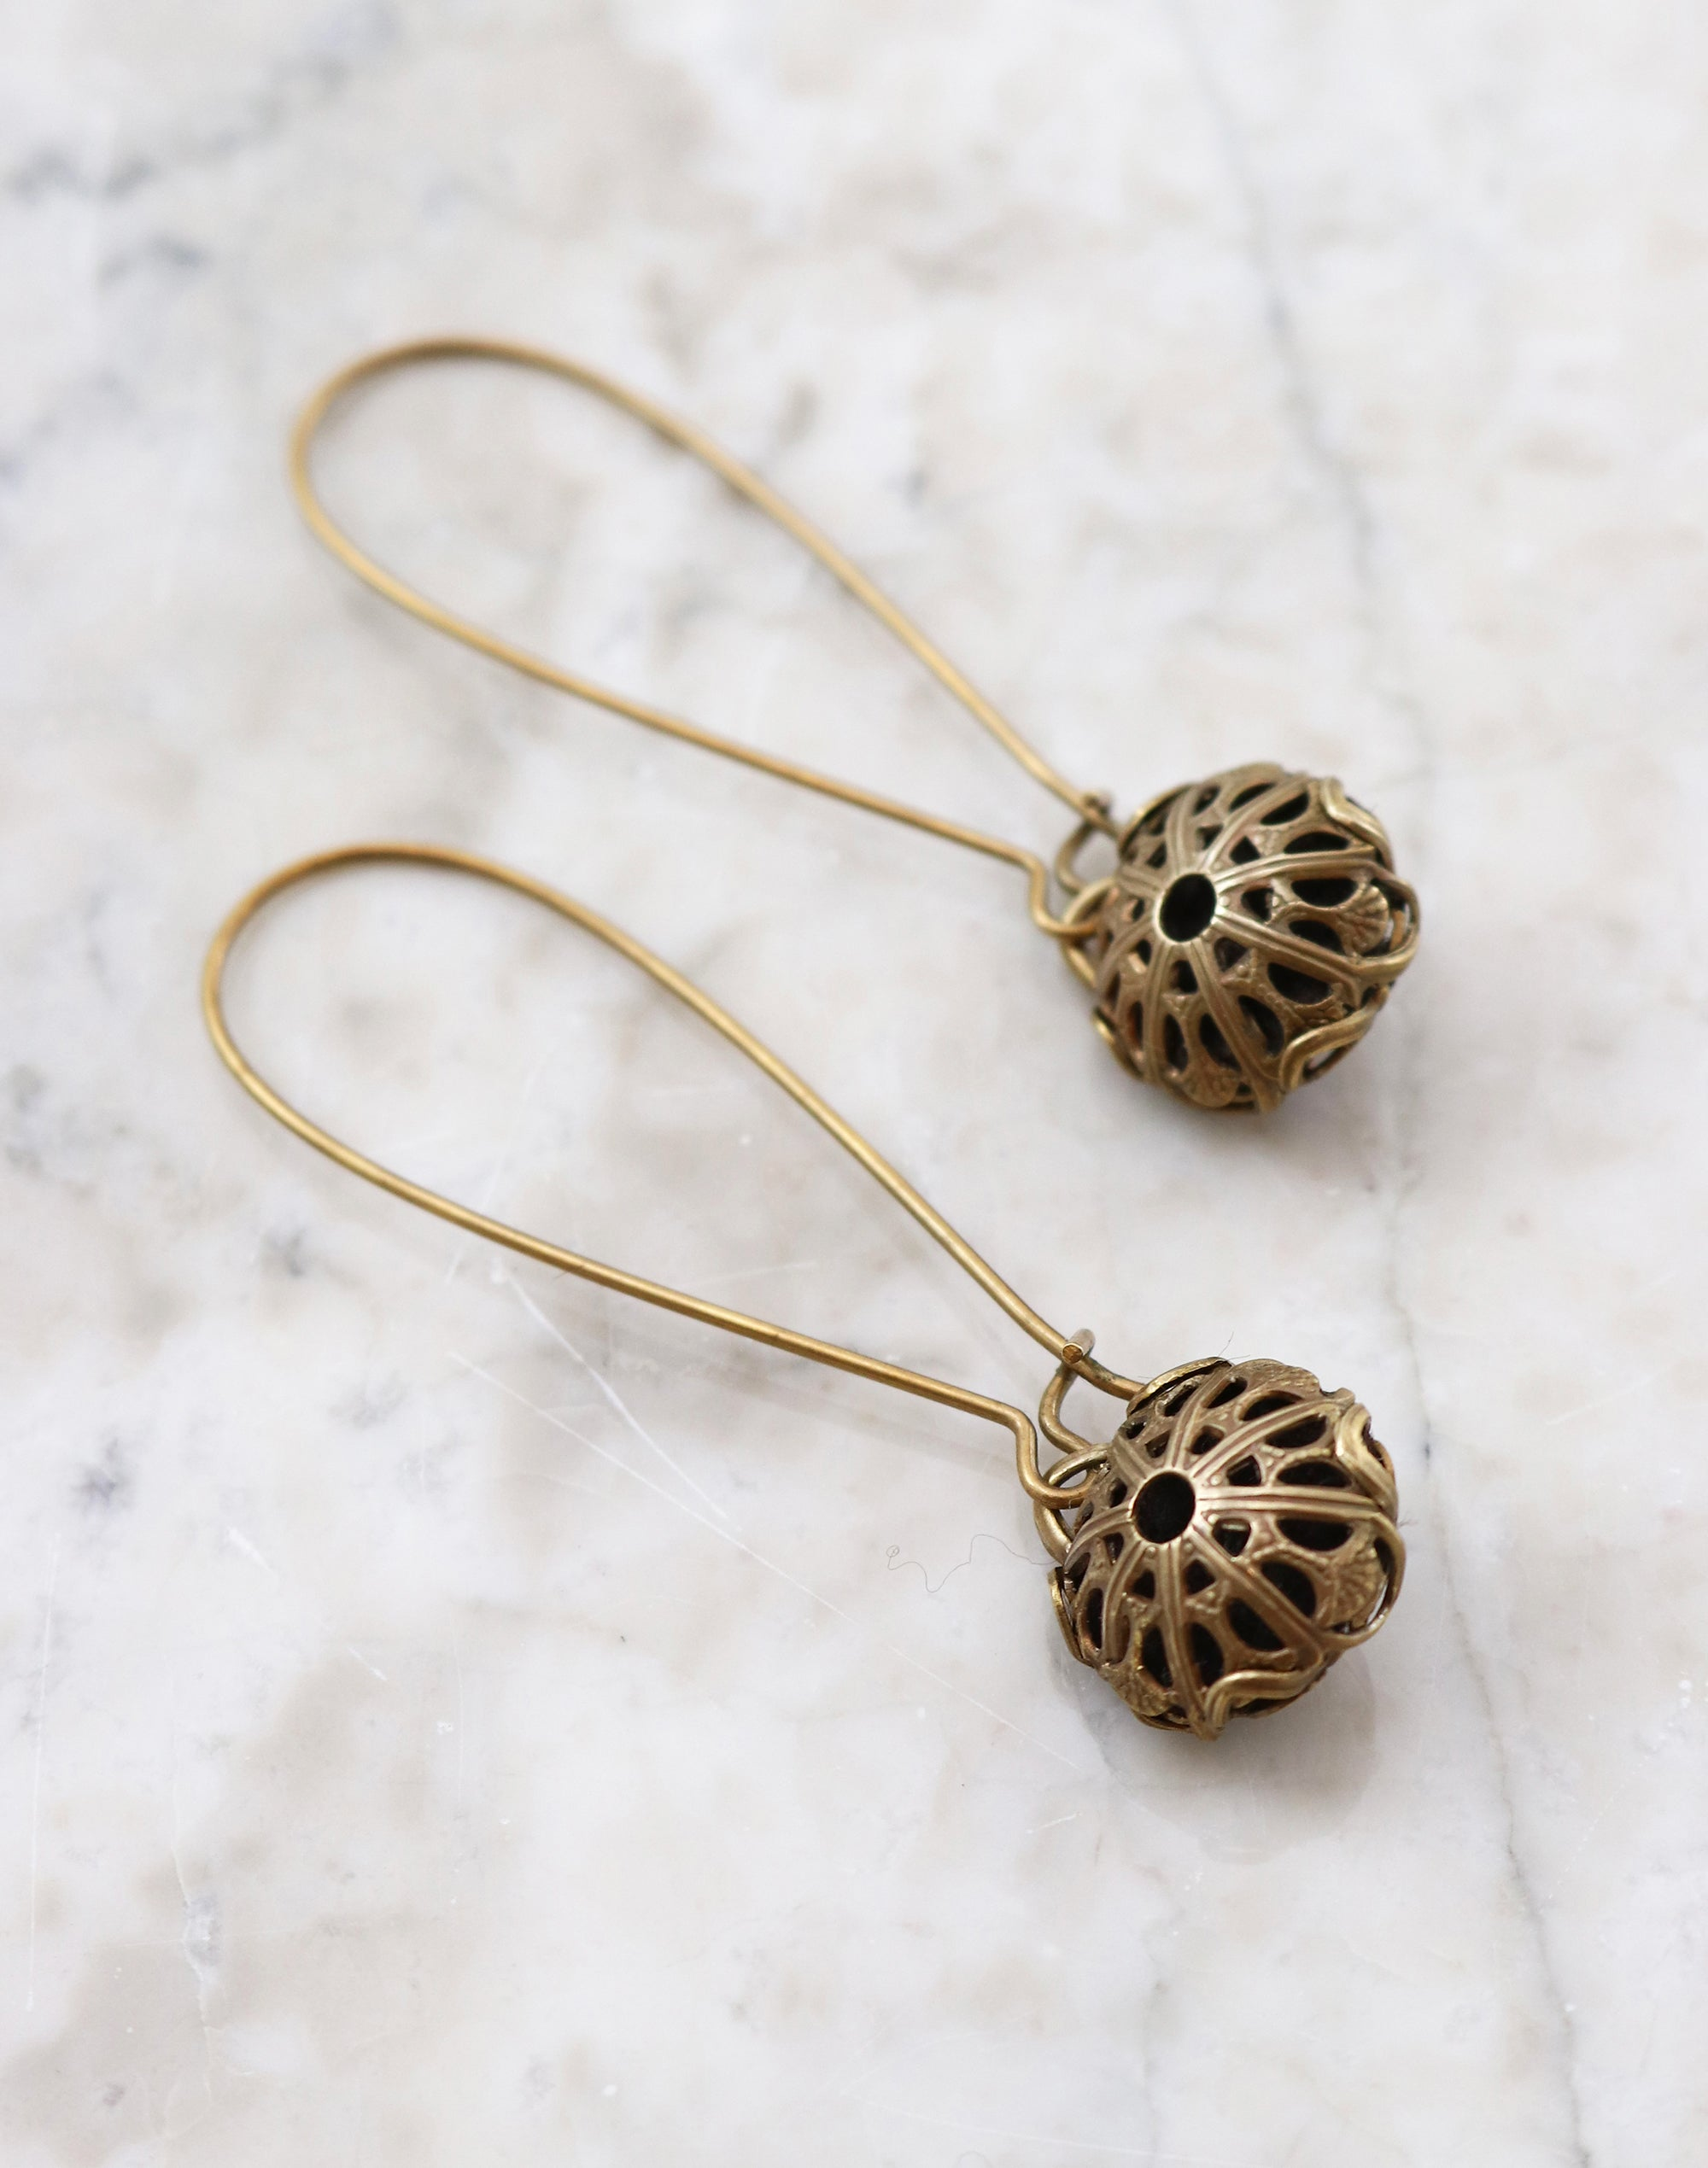 Sphere Diffuser Earrings, (1 pair)